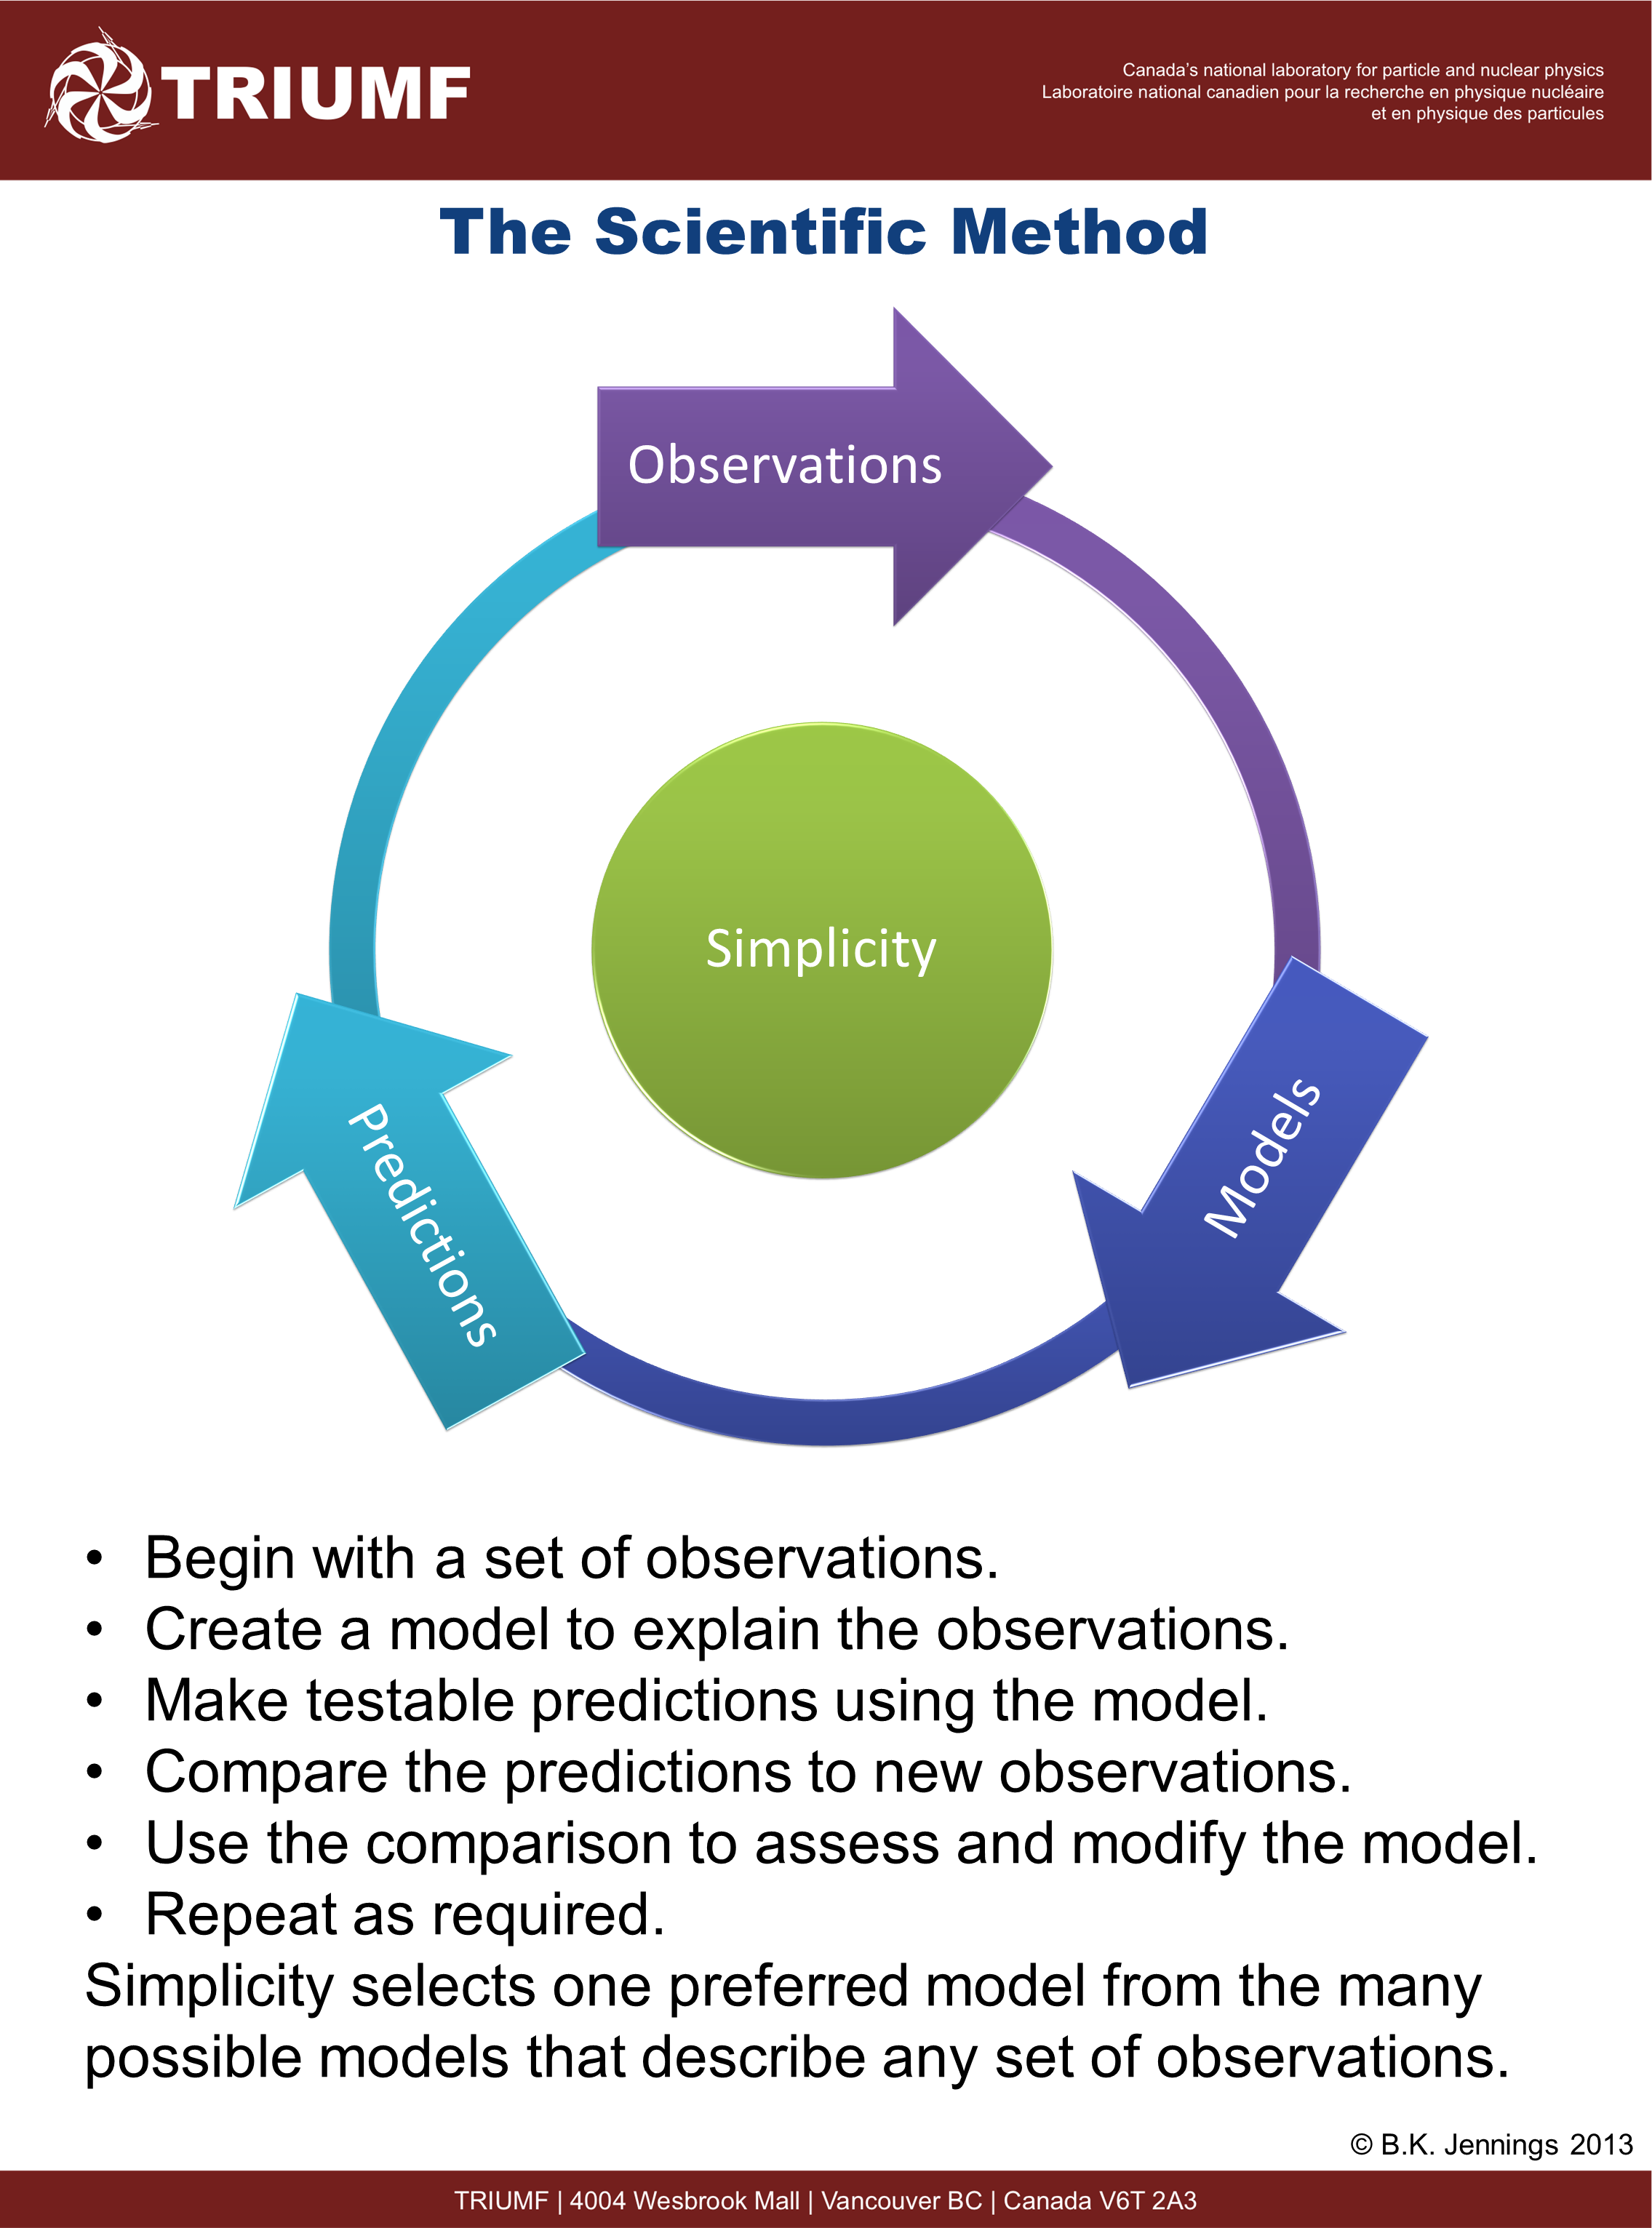 scientific method Now that you have settled on the question you want to ask, it's time to use the scientific method to design an experiment to answer that question.